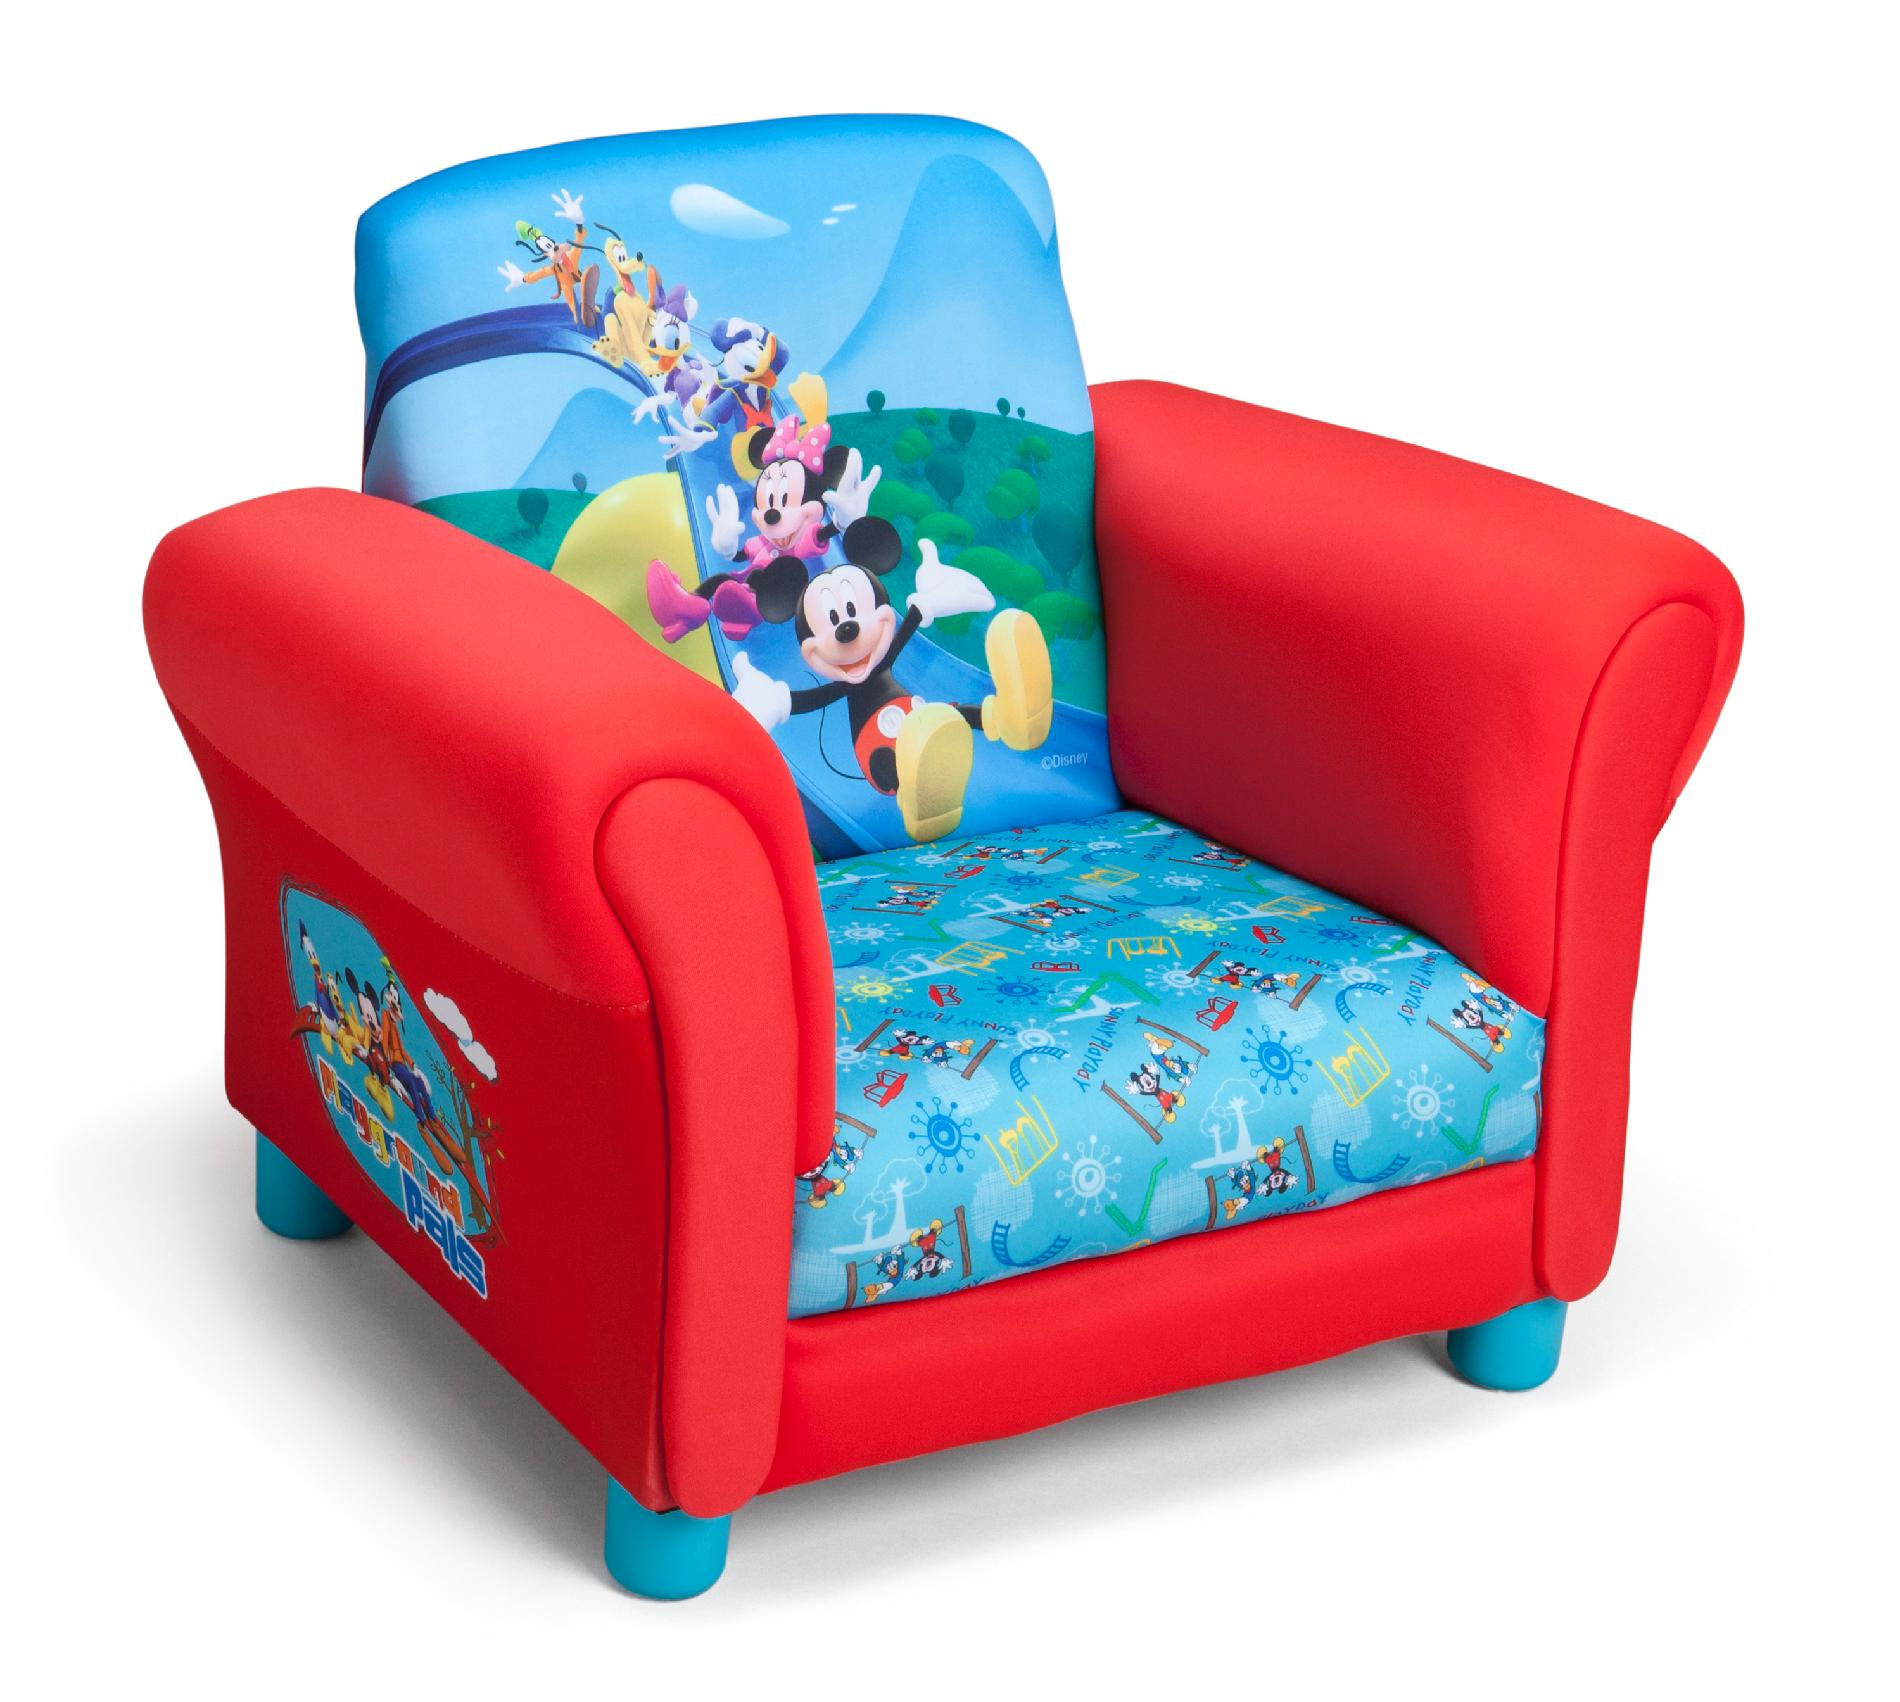 Toddler Chairs Toddler Furniture Buy Toddler Furniture In Baby Sears